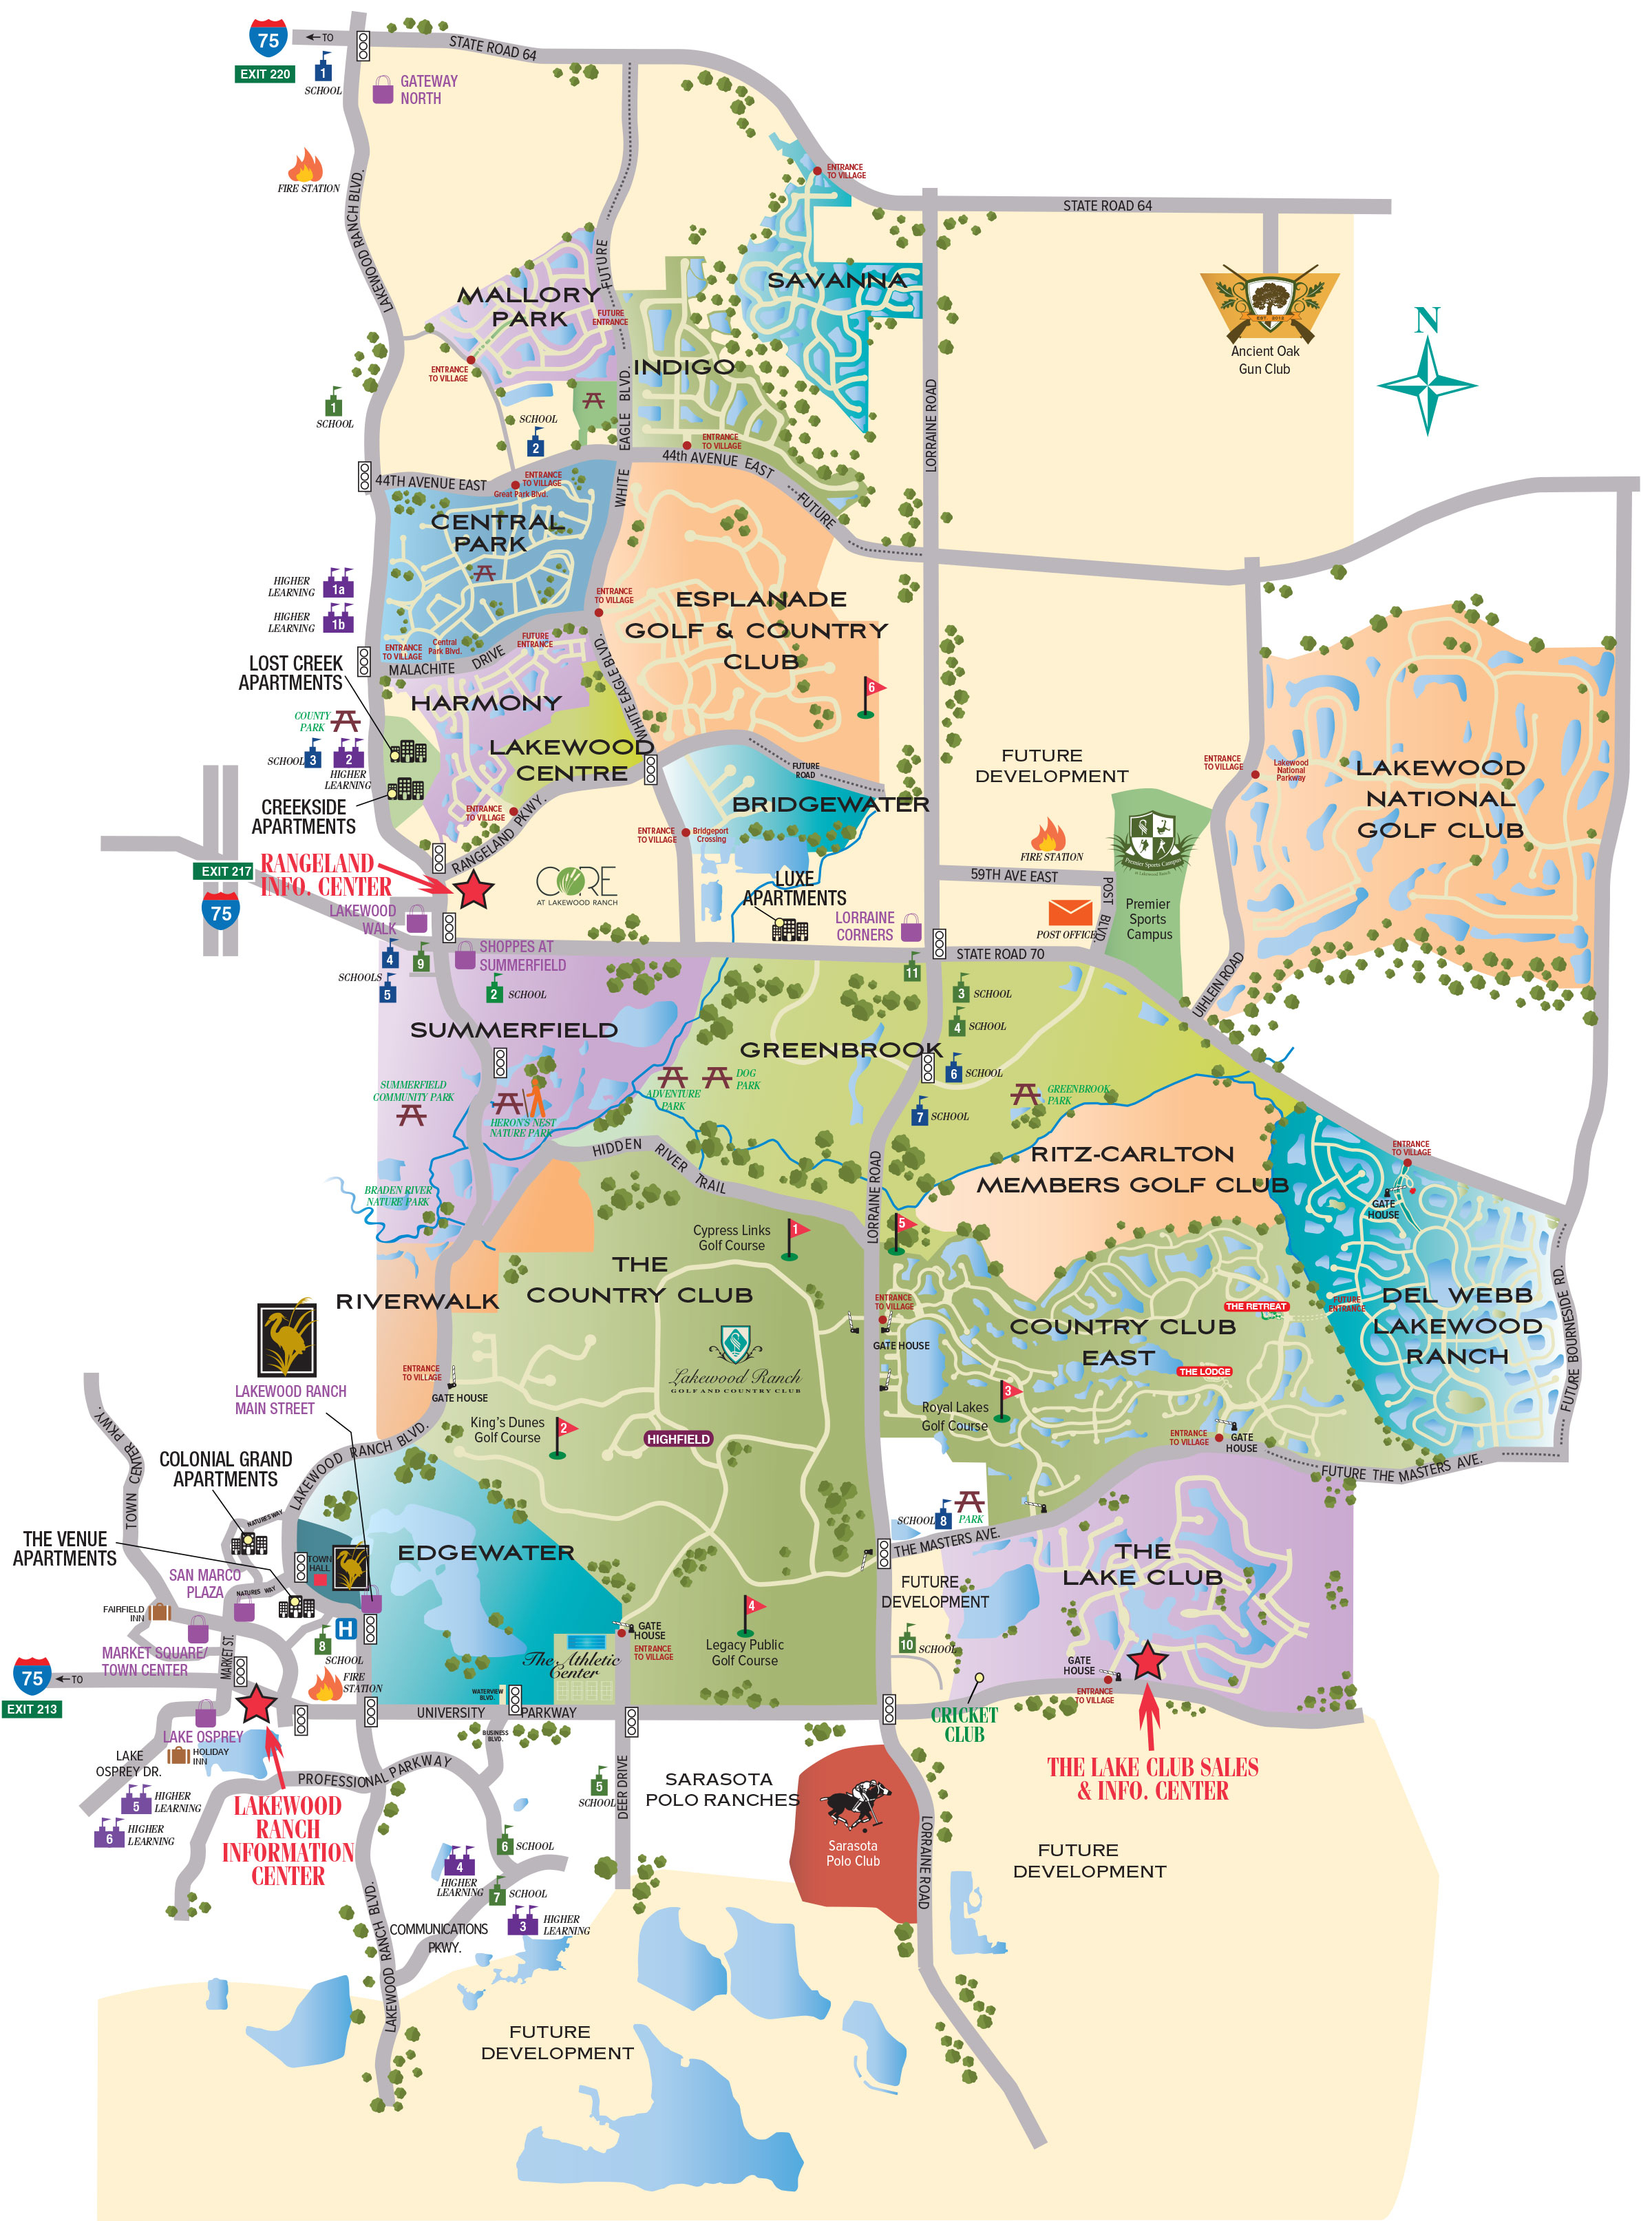 image relating to Printable Map of Florida referred to as Road Map Lakewood Ranch Www.topsimages - Lakewood Ranch